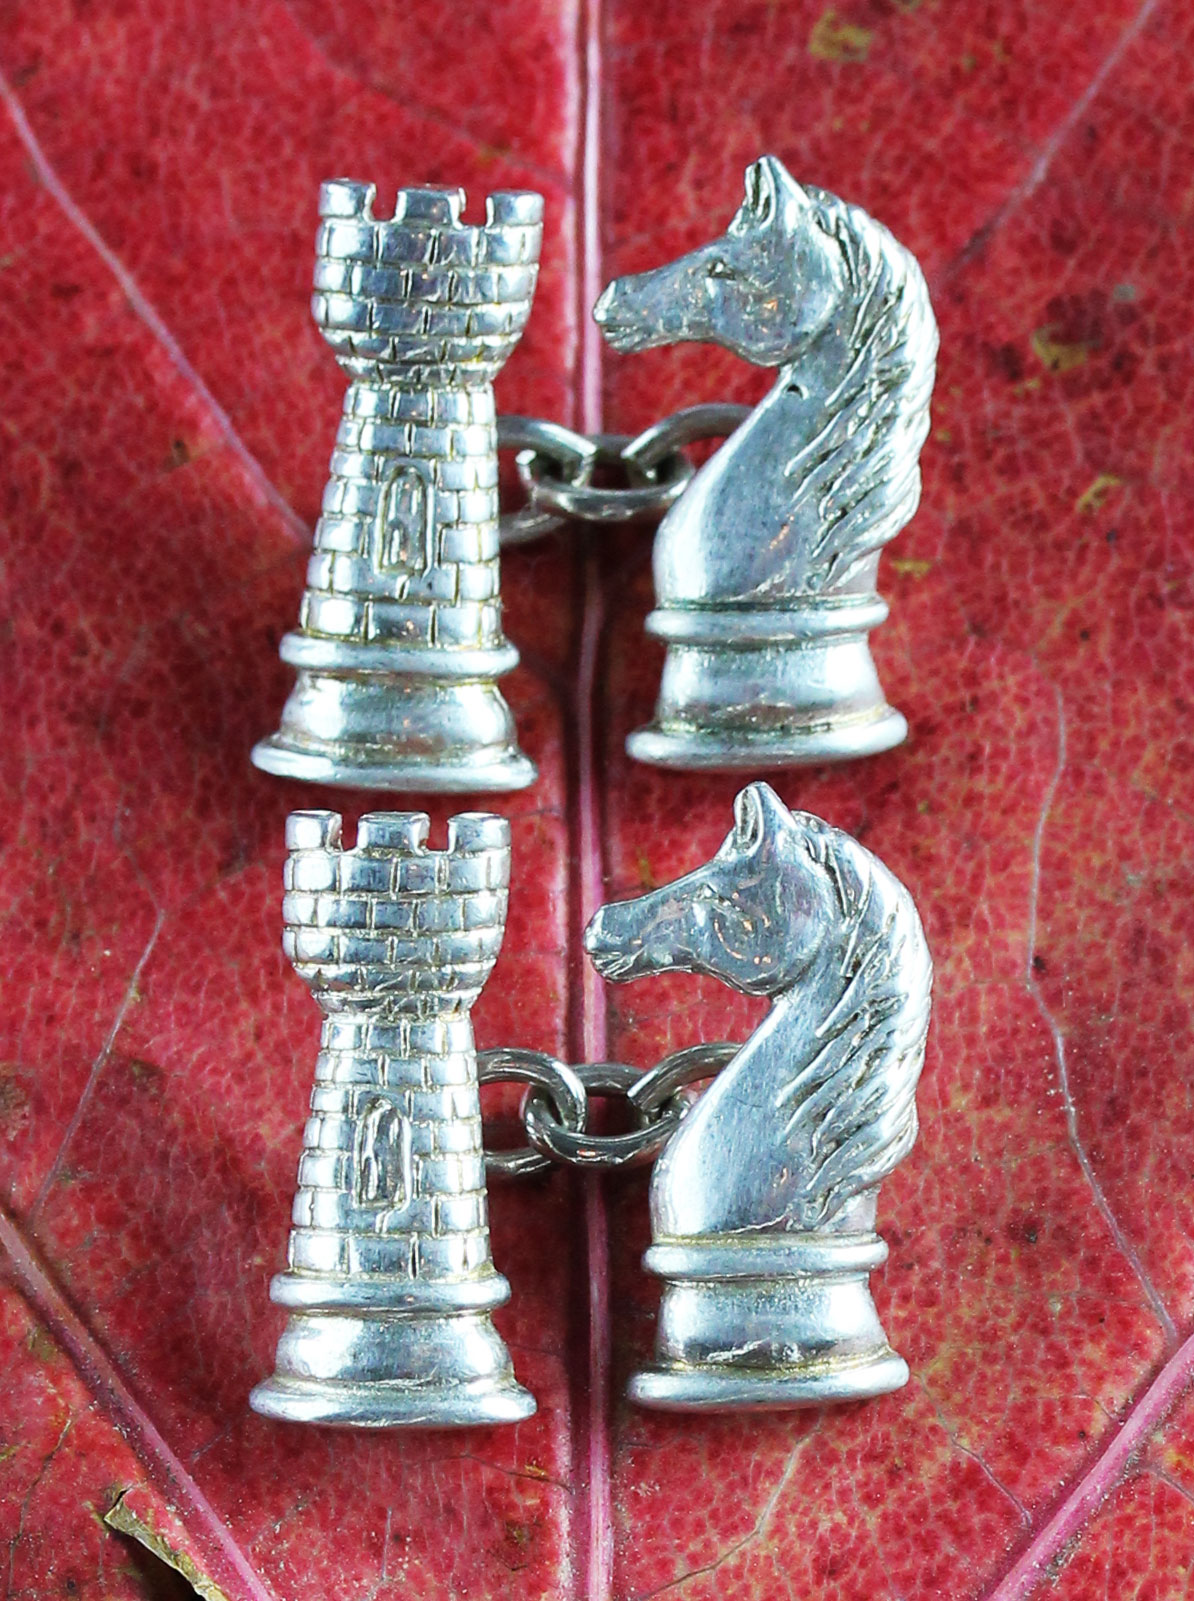 Pair of silver ches figures